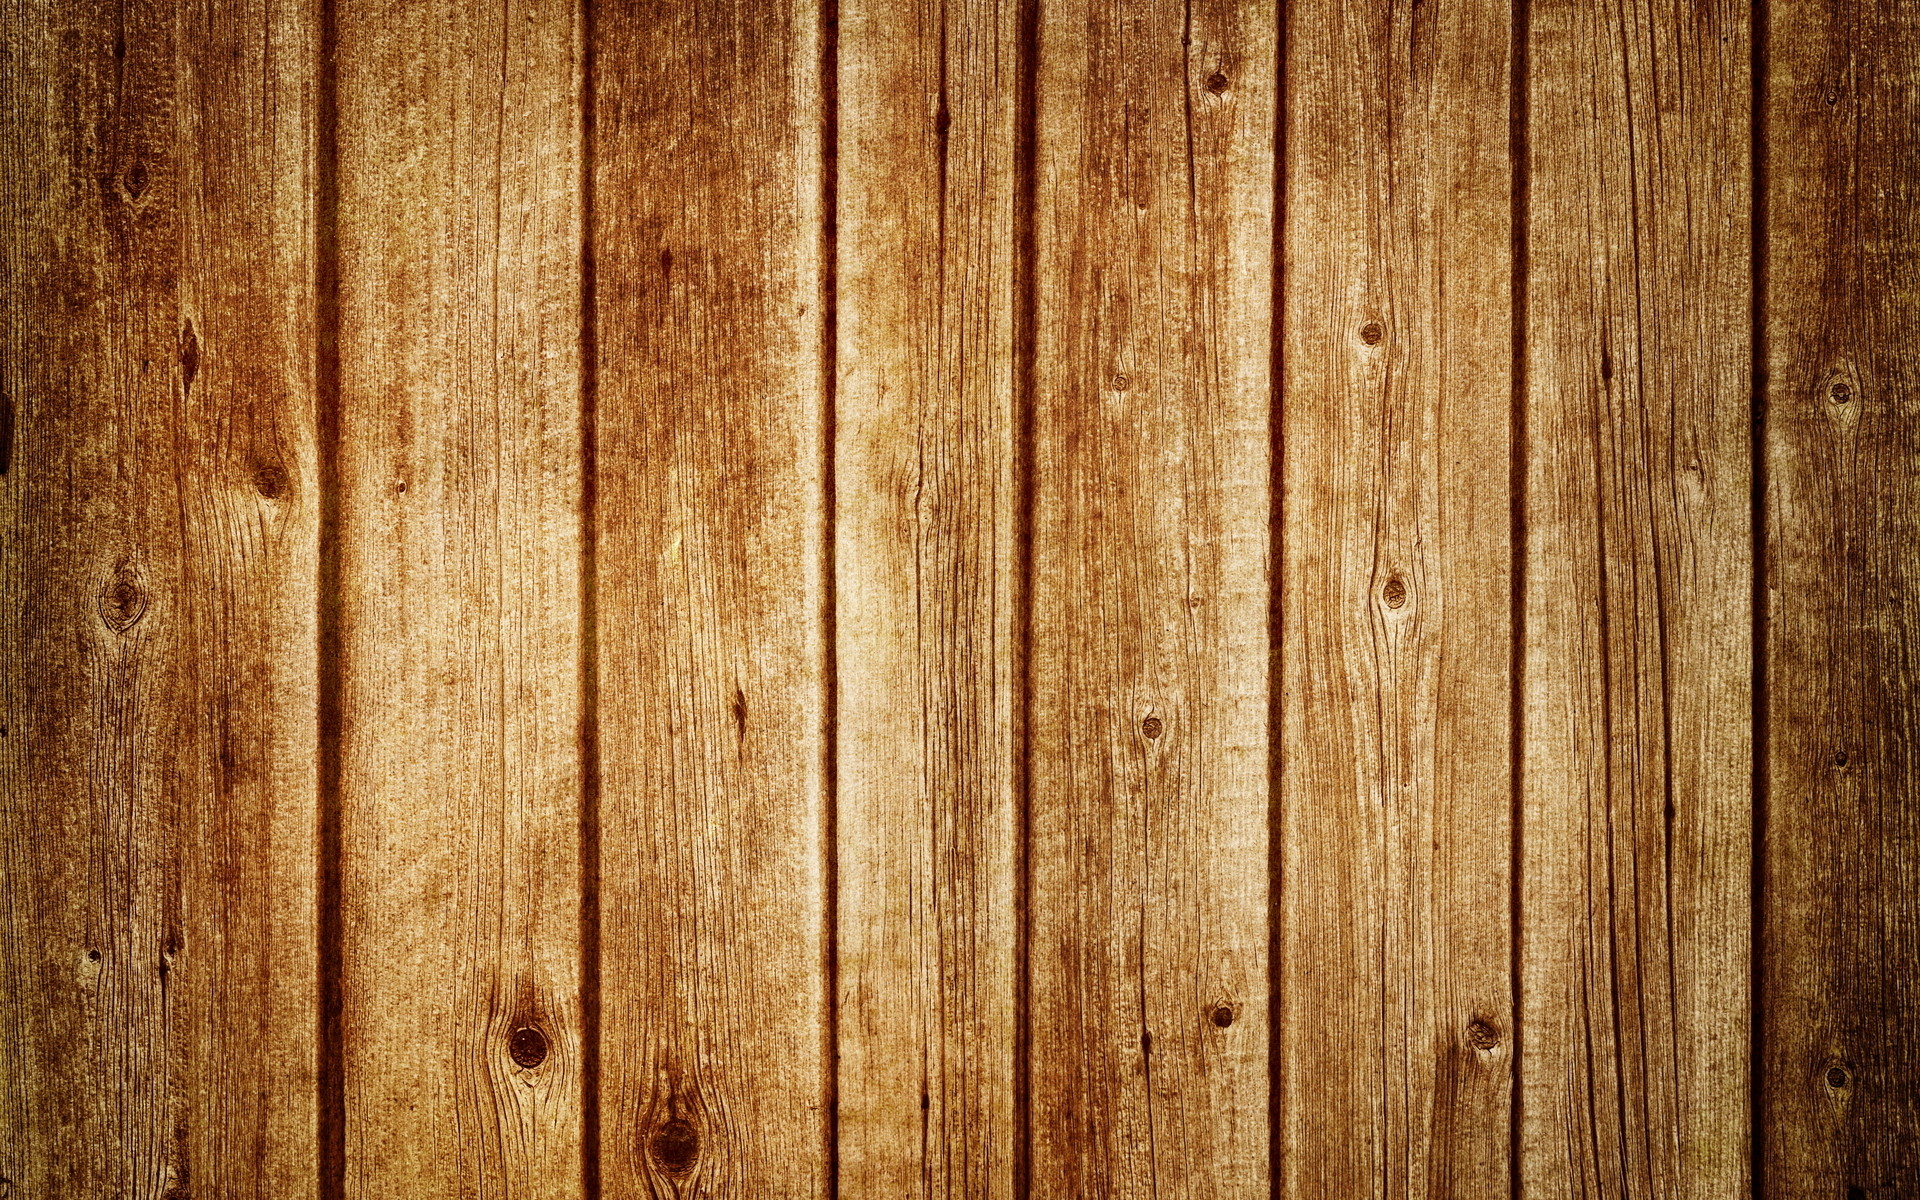 1920x1200 Texture wallpaper board wood 1920 1200 resolution wallpapers | Style  Background Wallpaper